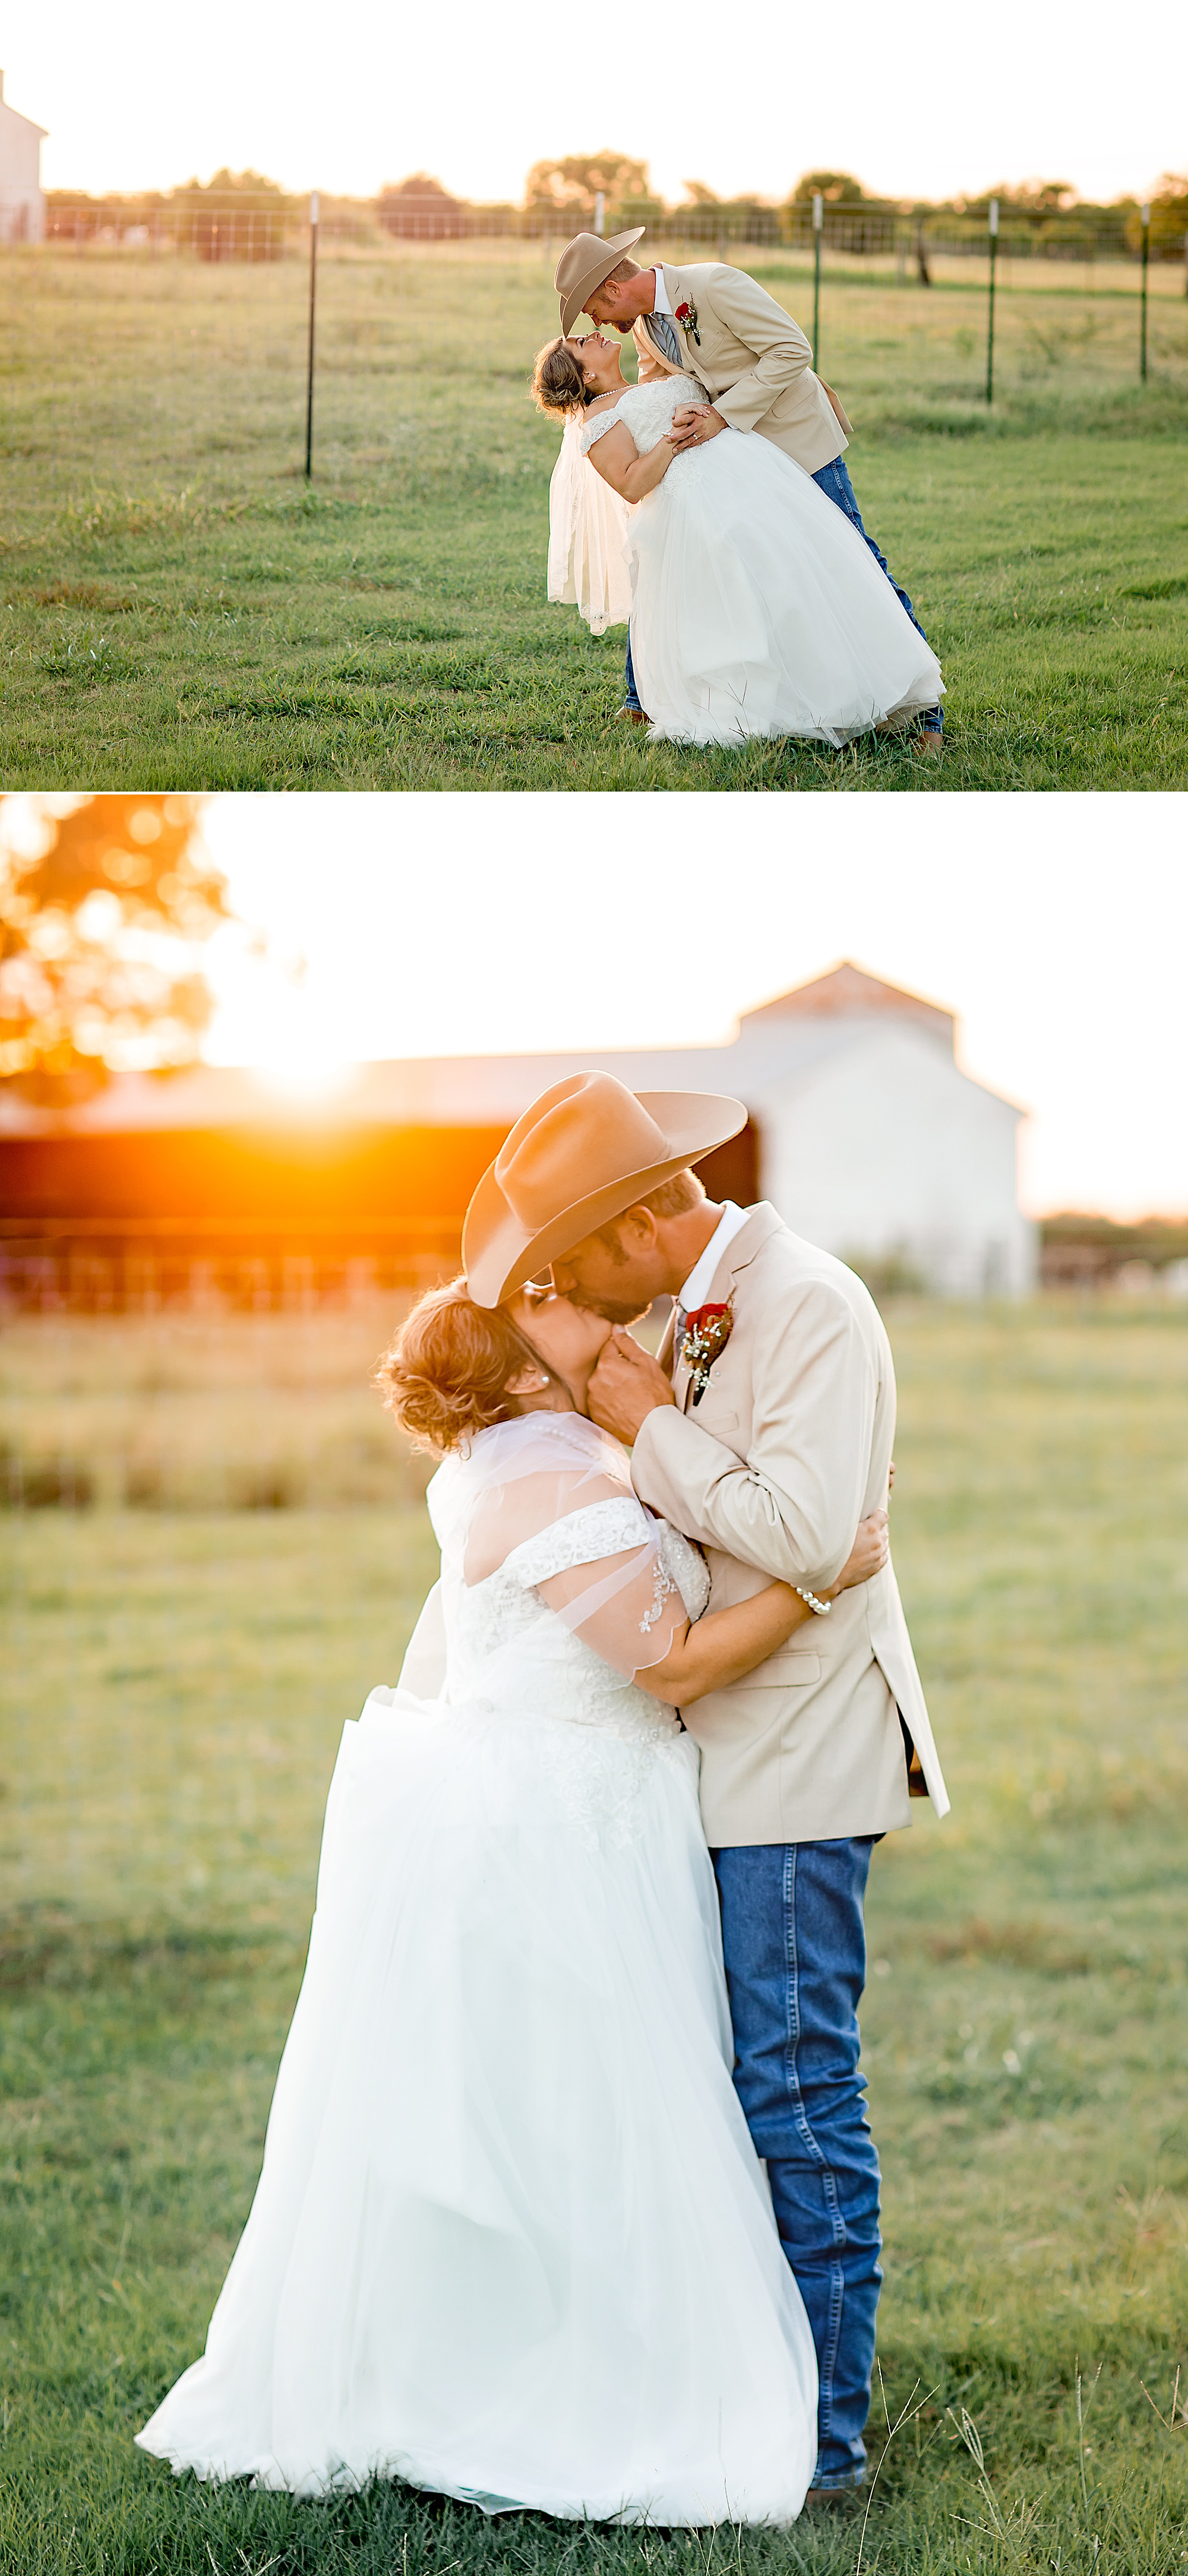 Wedding-Photographer-Rustic-Sunflower-theme-Texas-Carly-Barton-Photography_0106.jpg